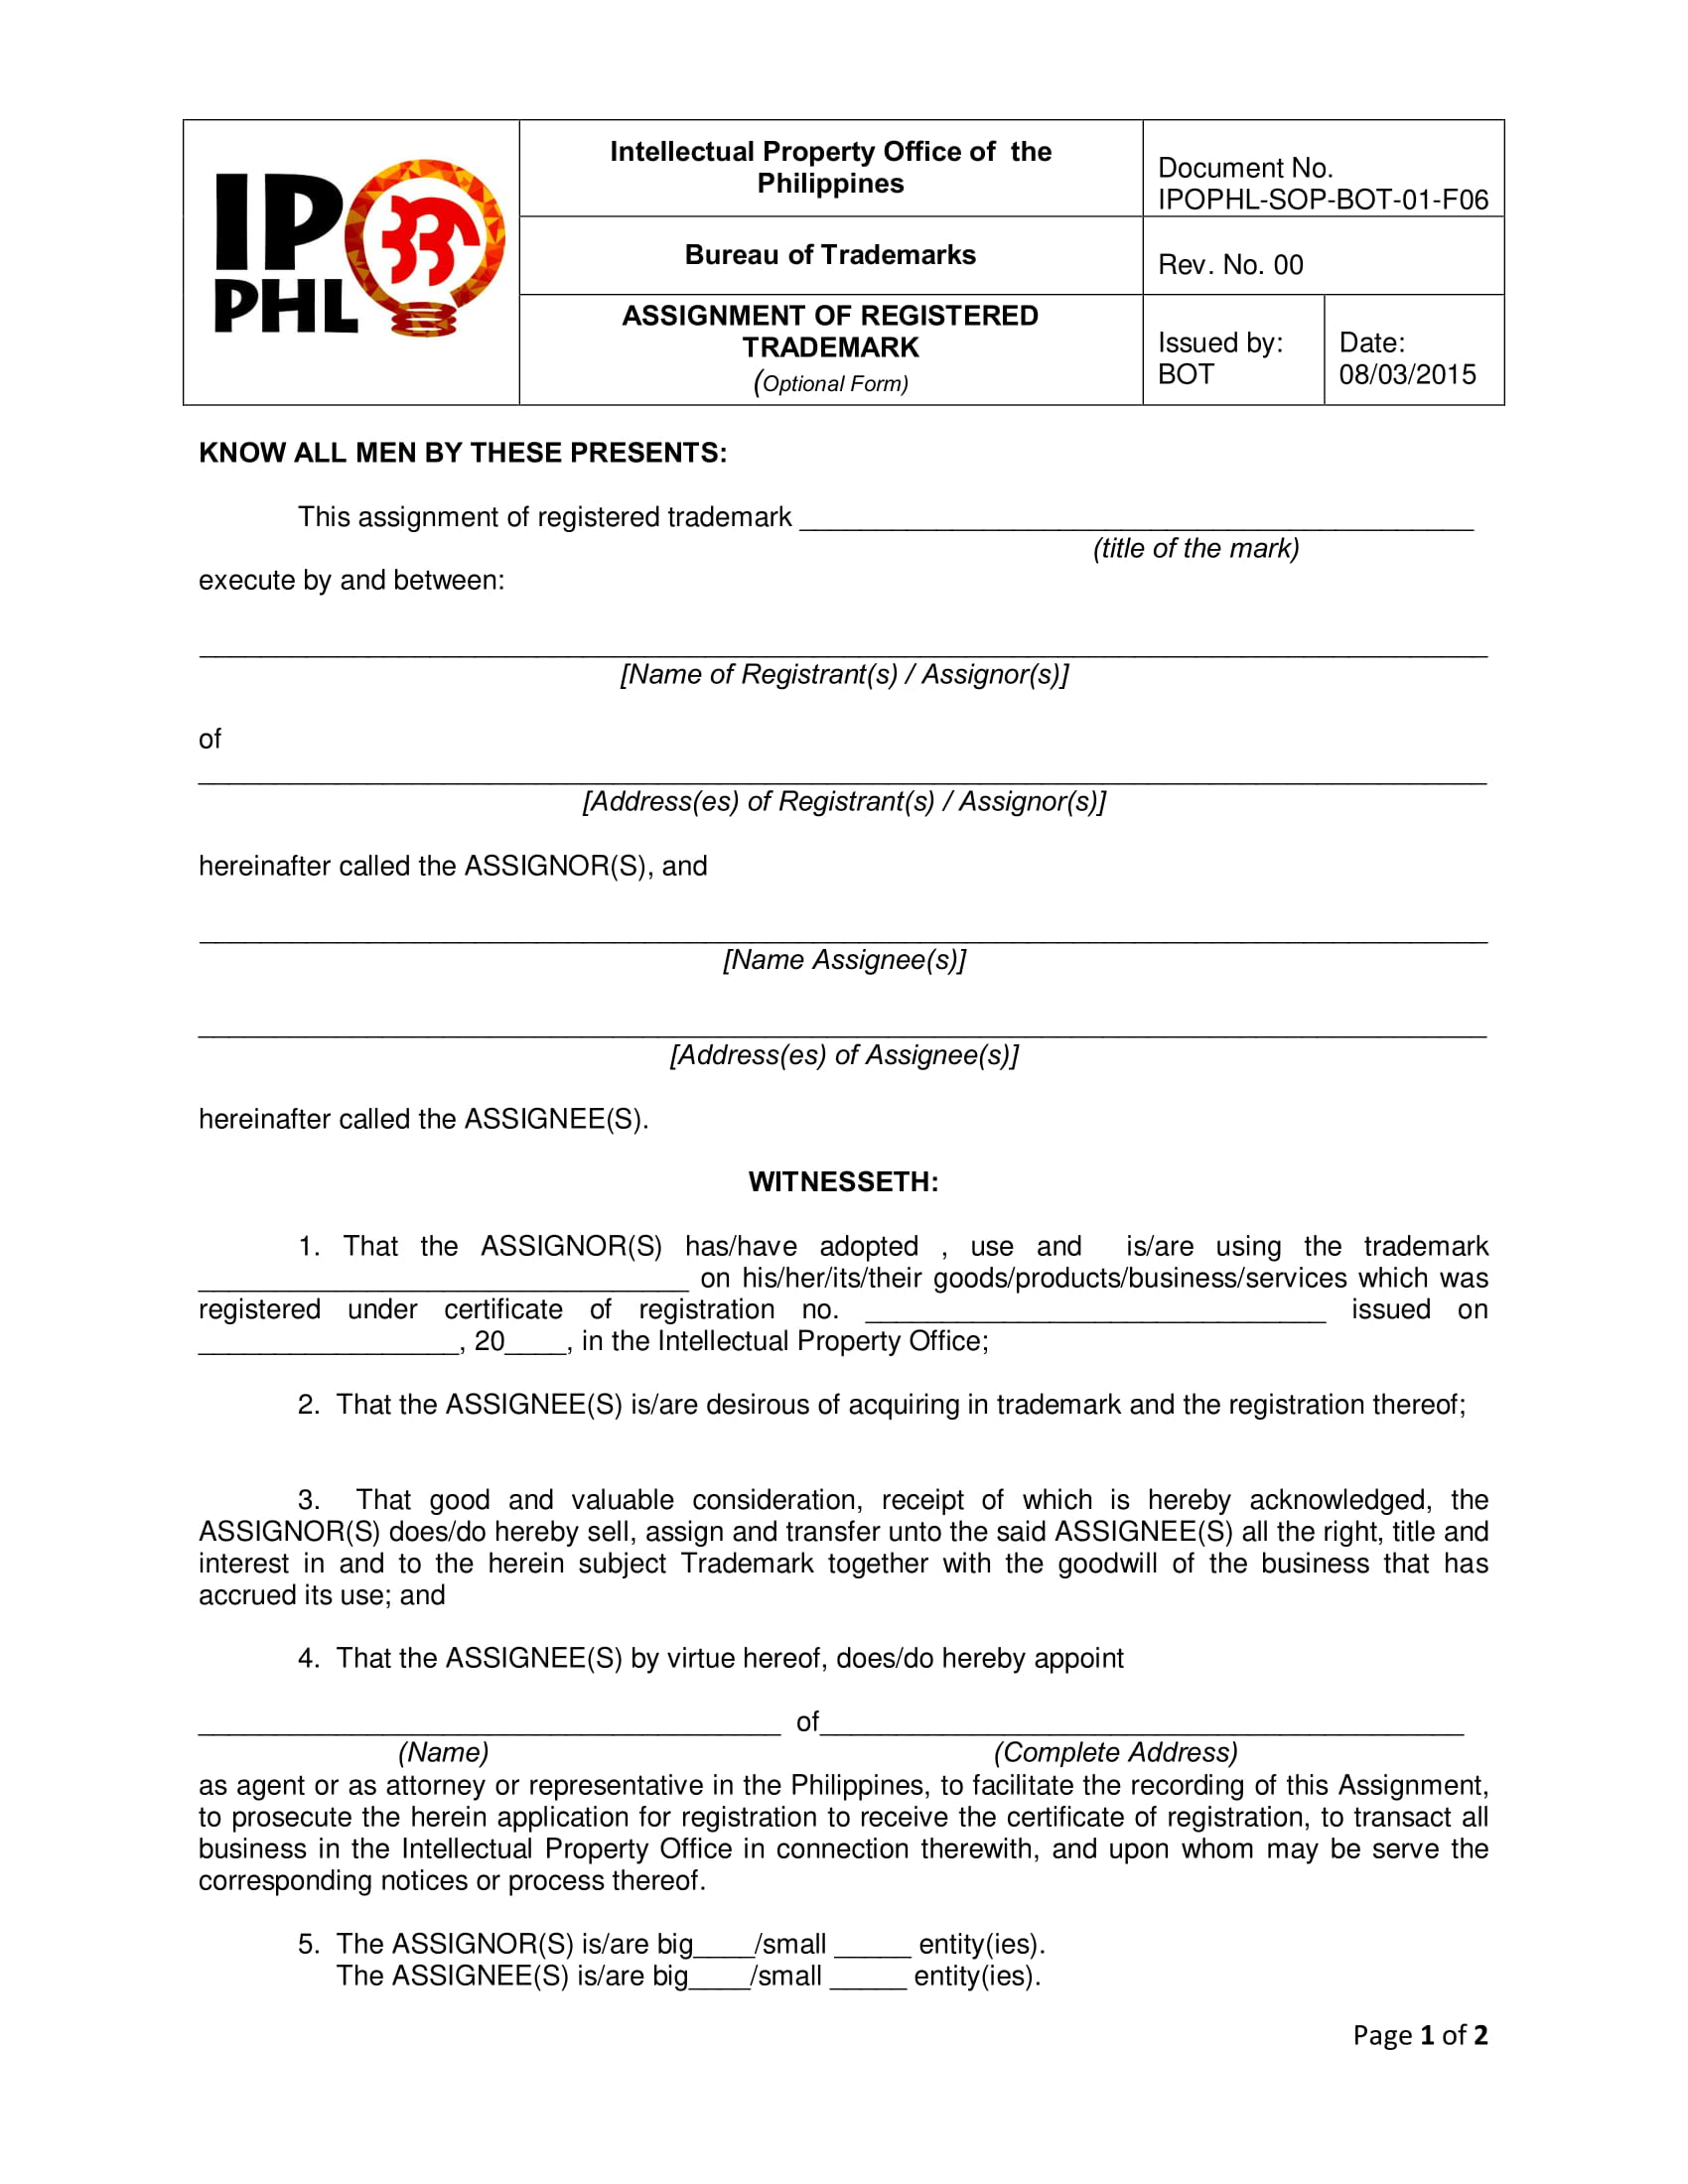 Superb Registered Trademark Assignment Form